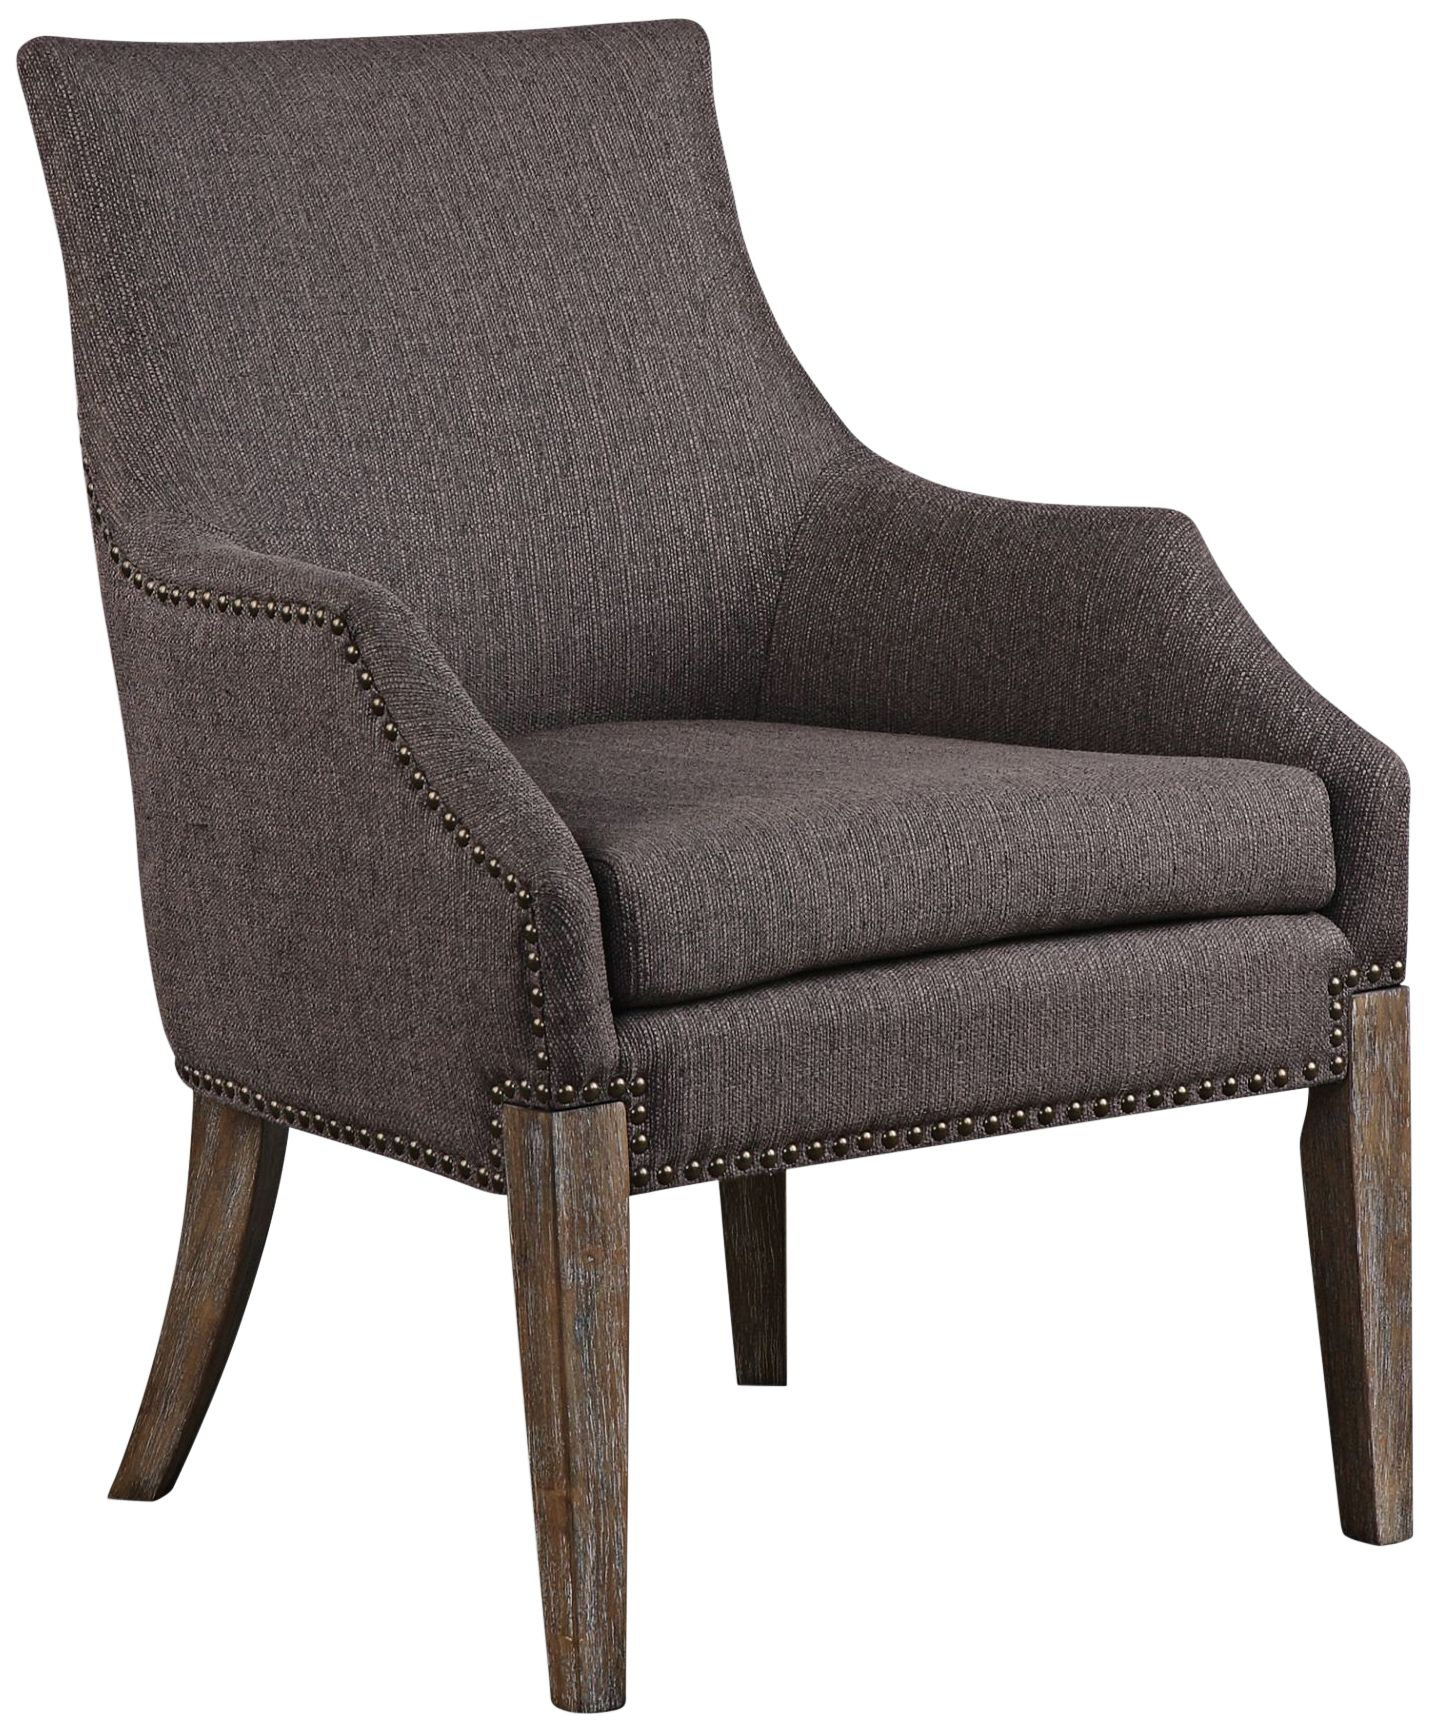 Uttermost Karson Taupe Gray Linen Fabric Accent Chair